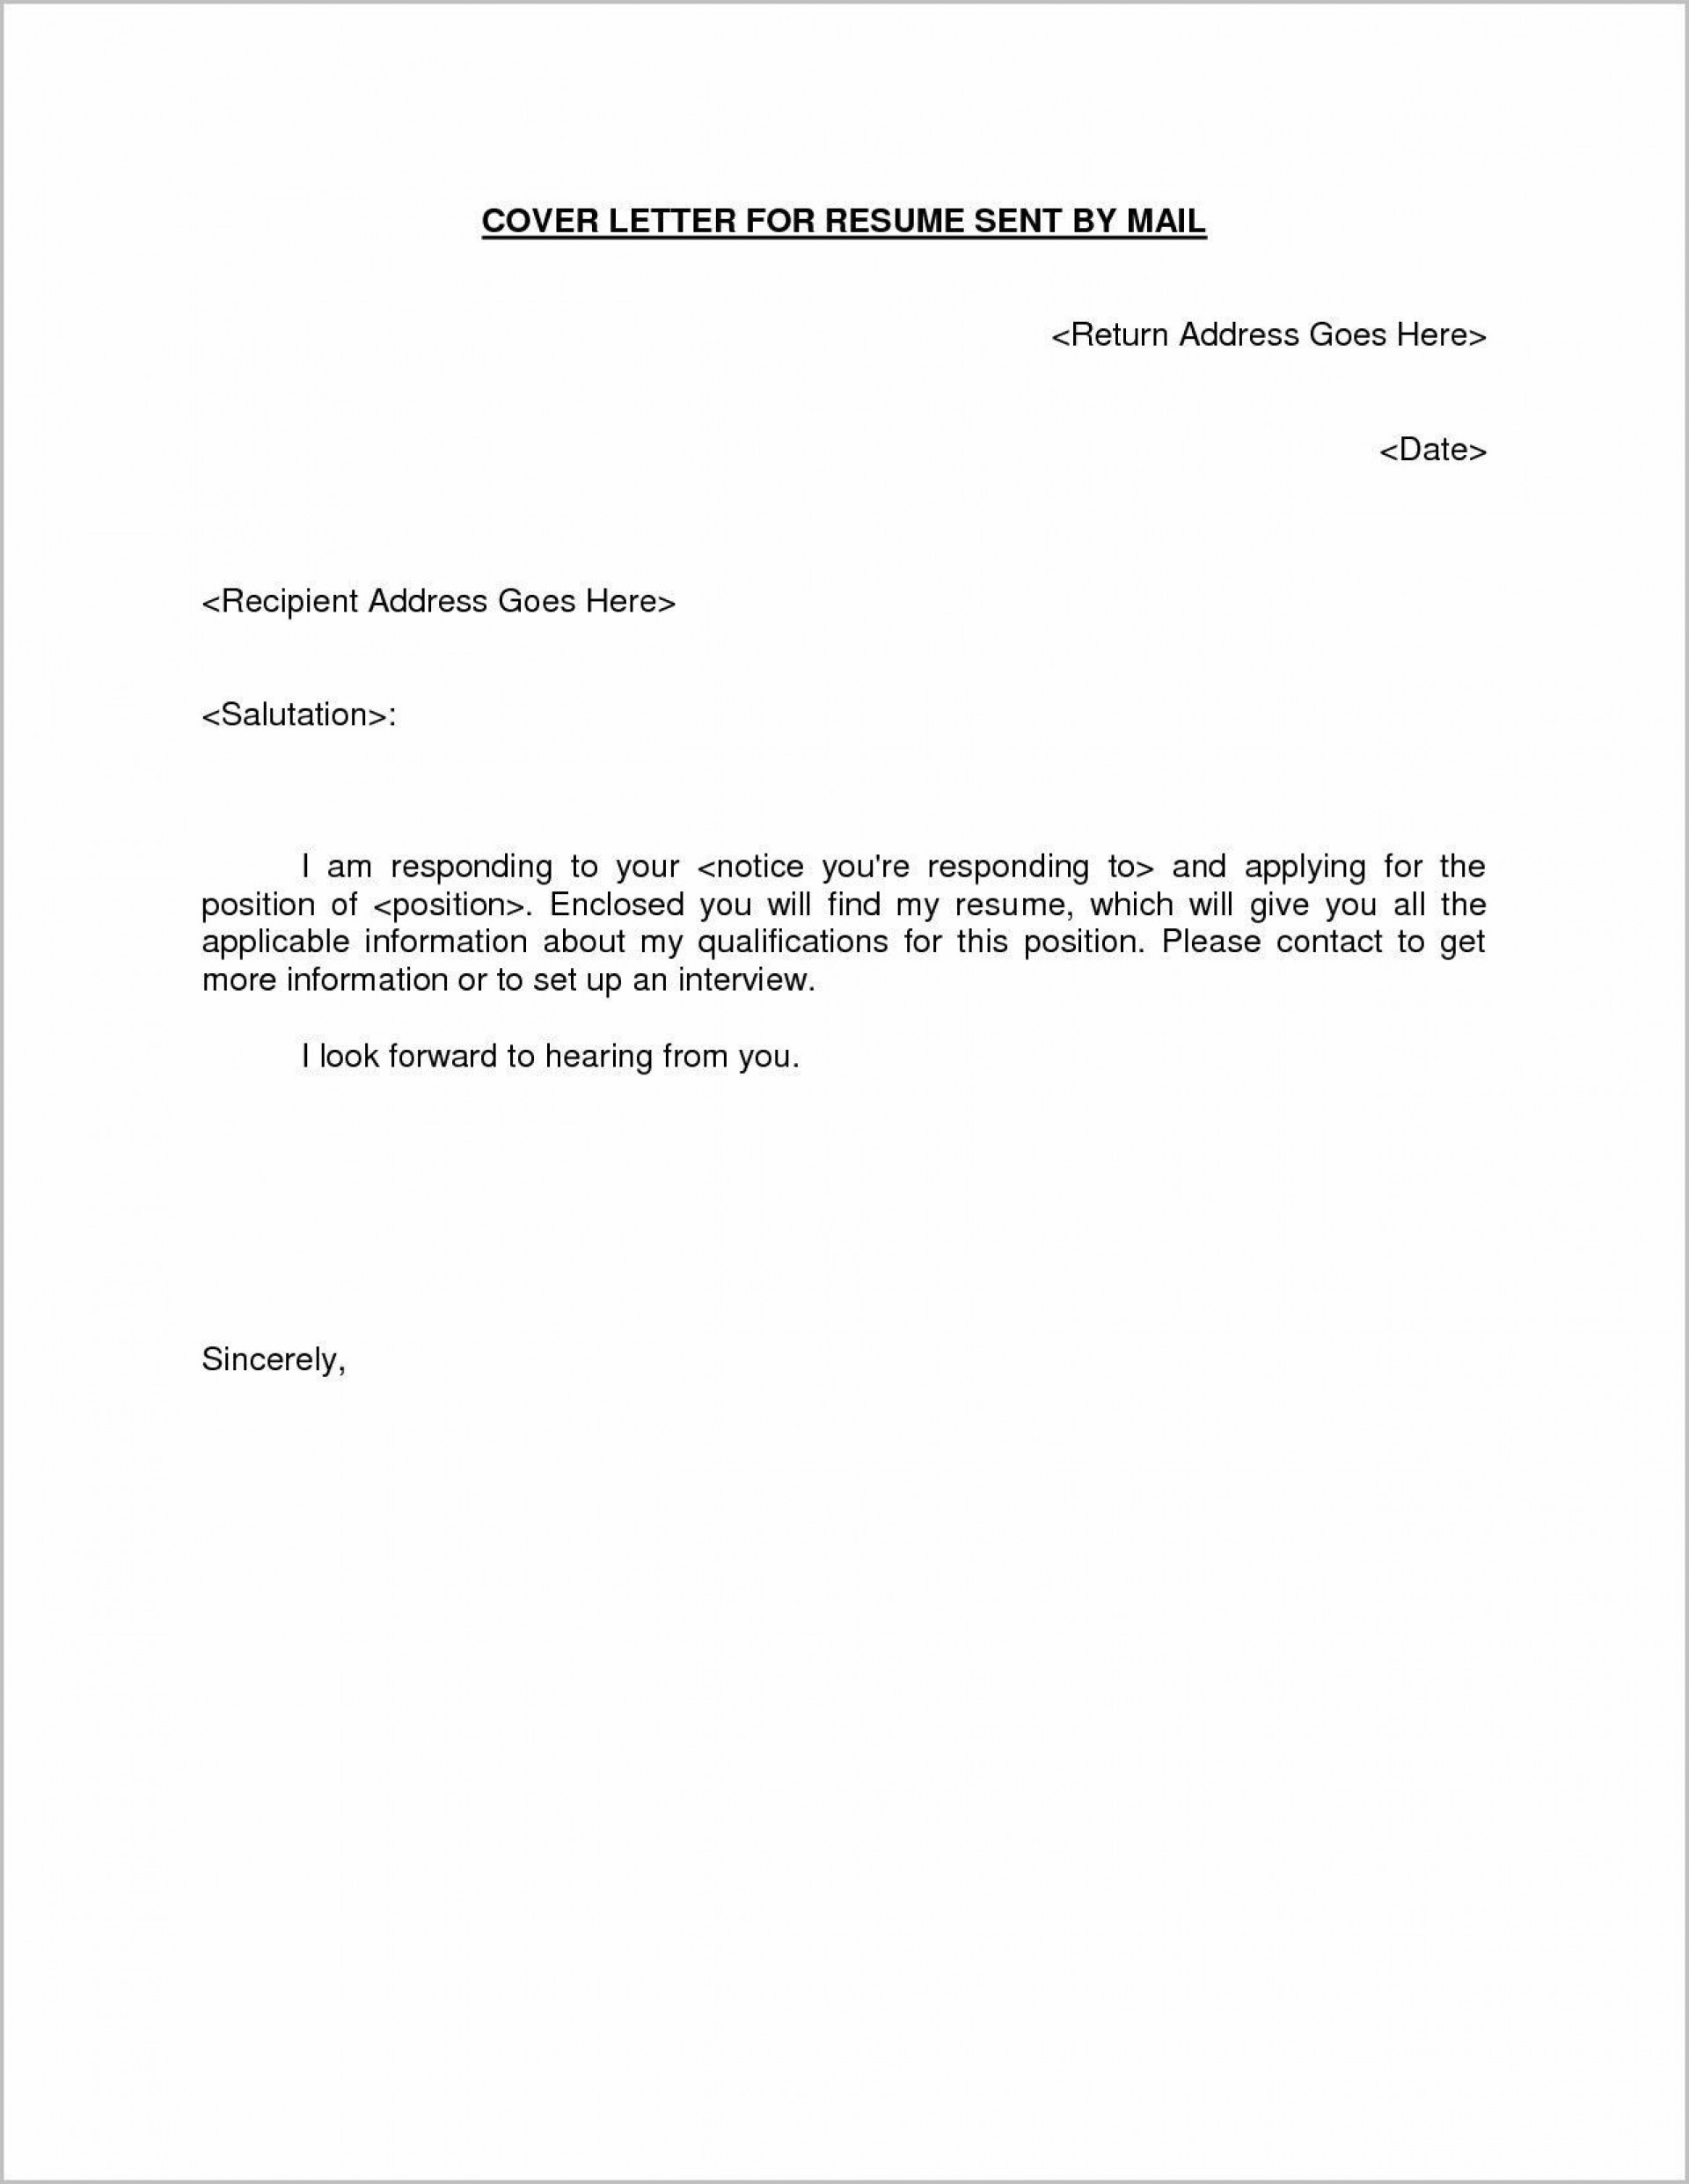 001 Imposing Email Cover Letter Sample Inspiration  Samples Resume Example Of For Job Internship1920